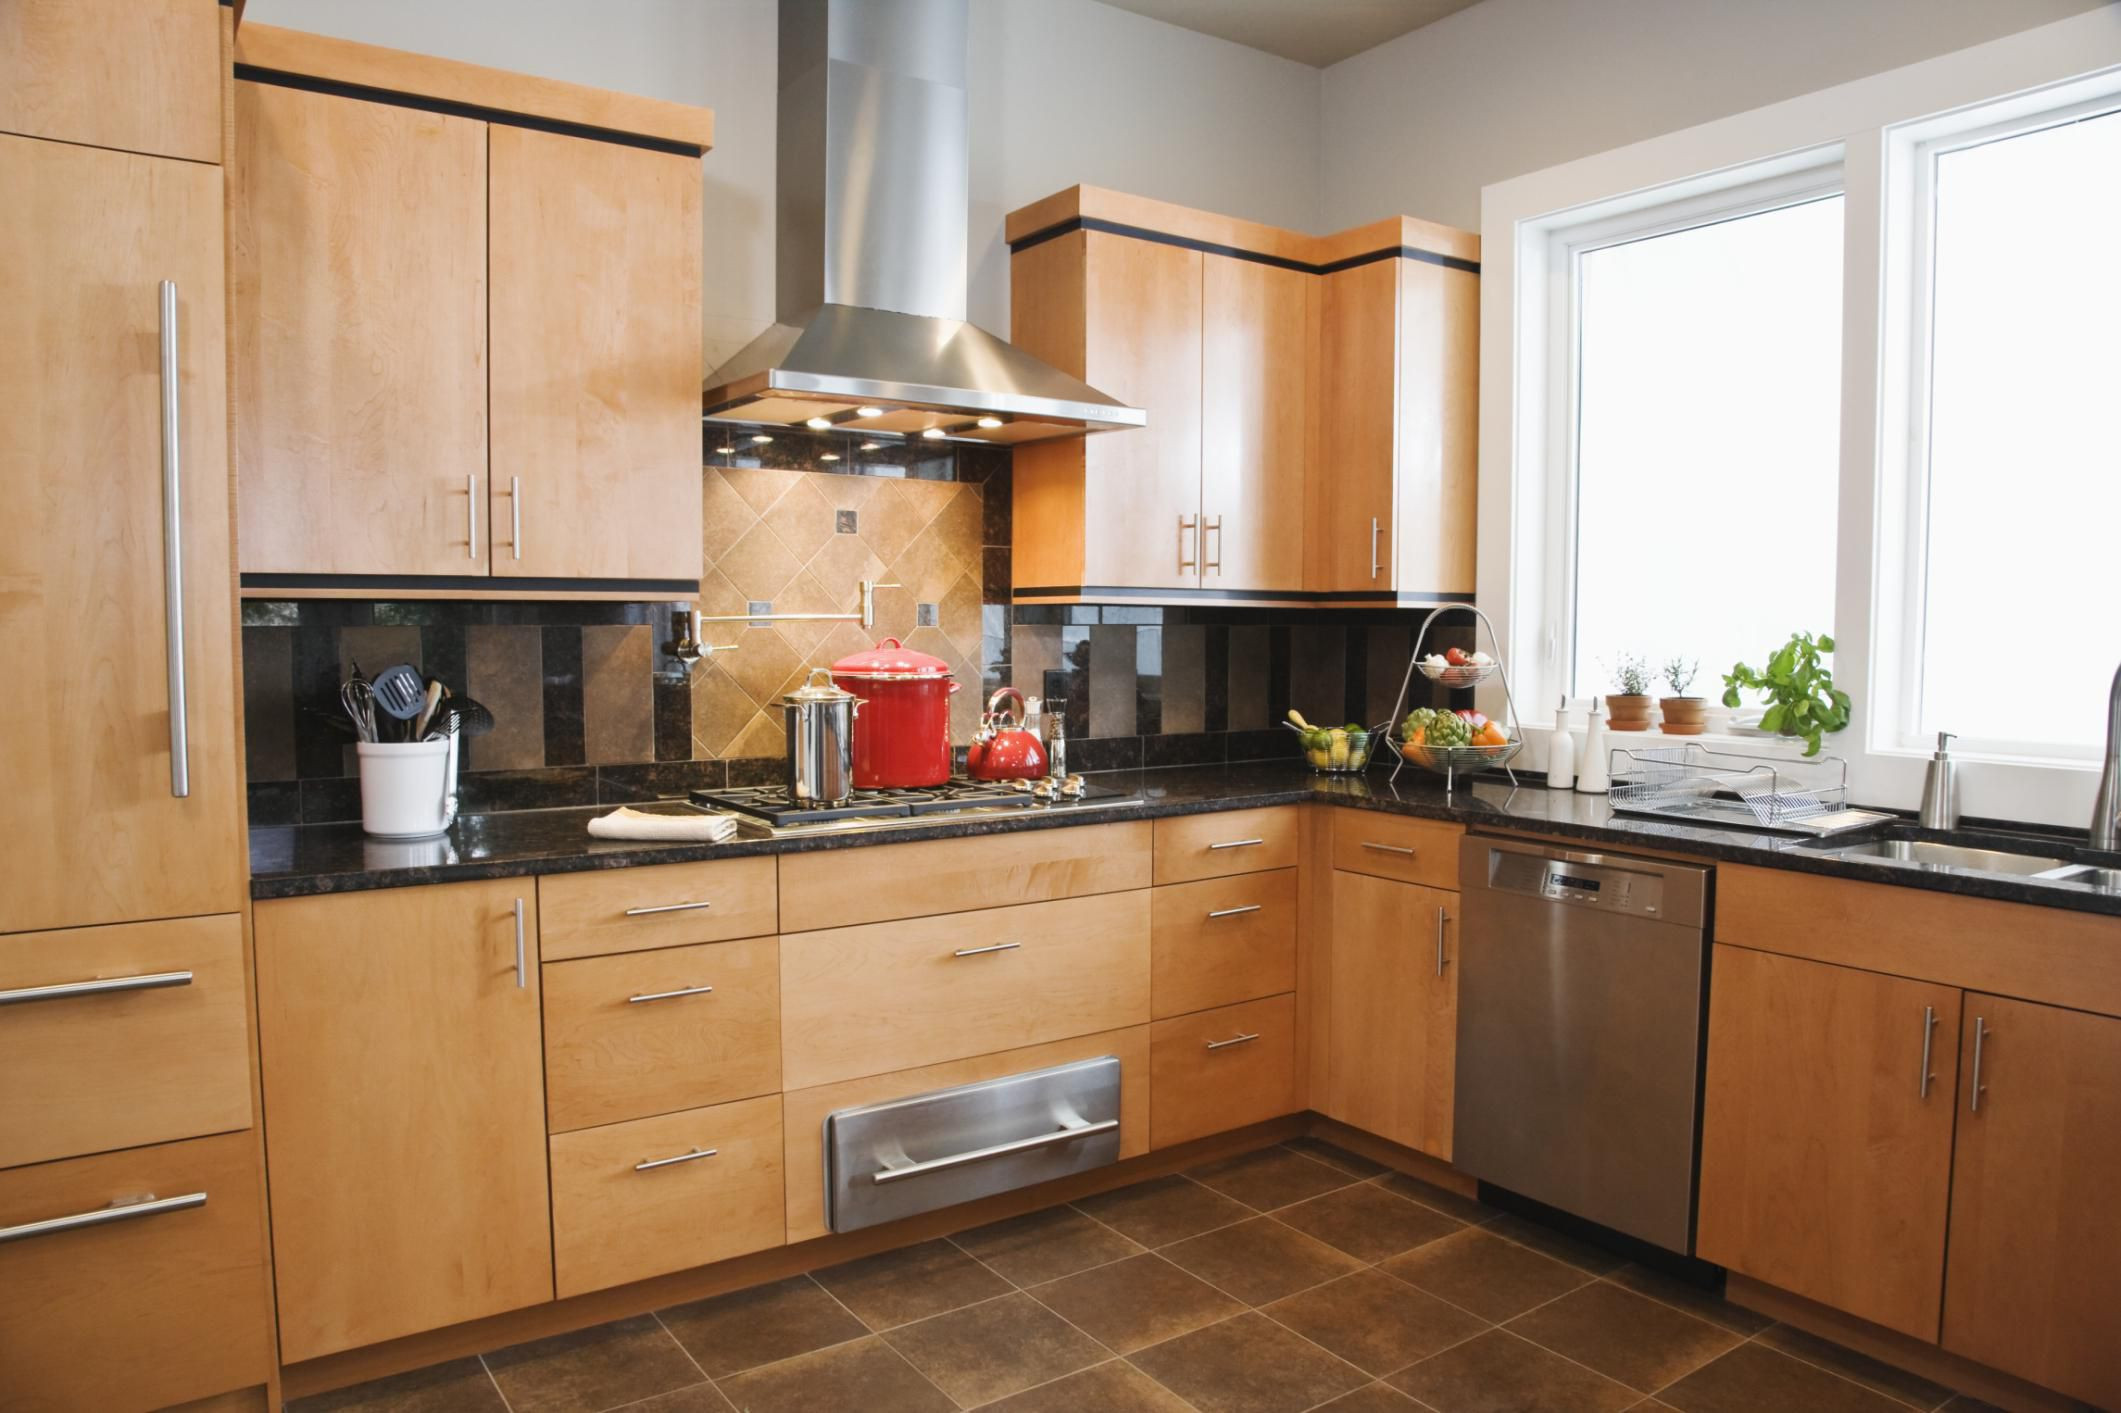 Best ideas about Upper Kitchen Cabinets . Save or Pin Optimal Kitchen Upper Cabinet Height Now.